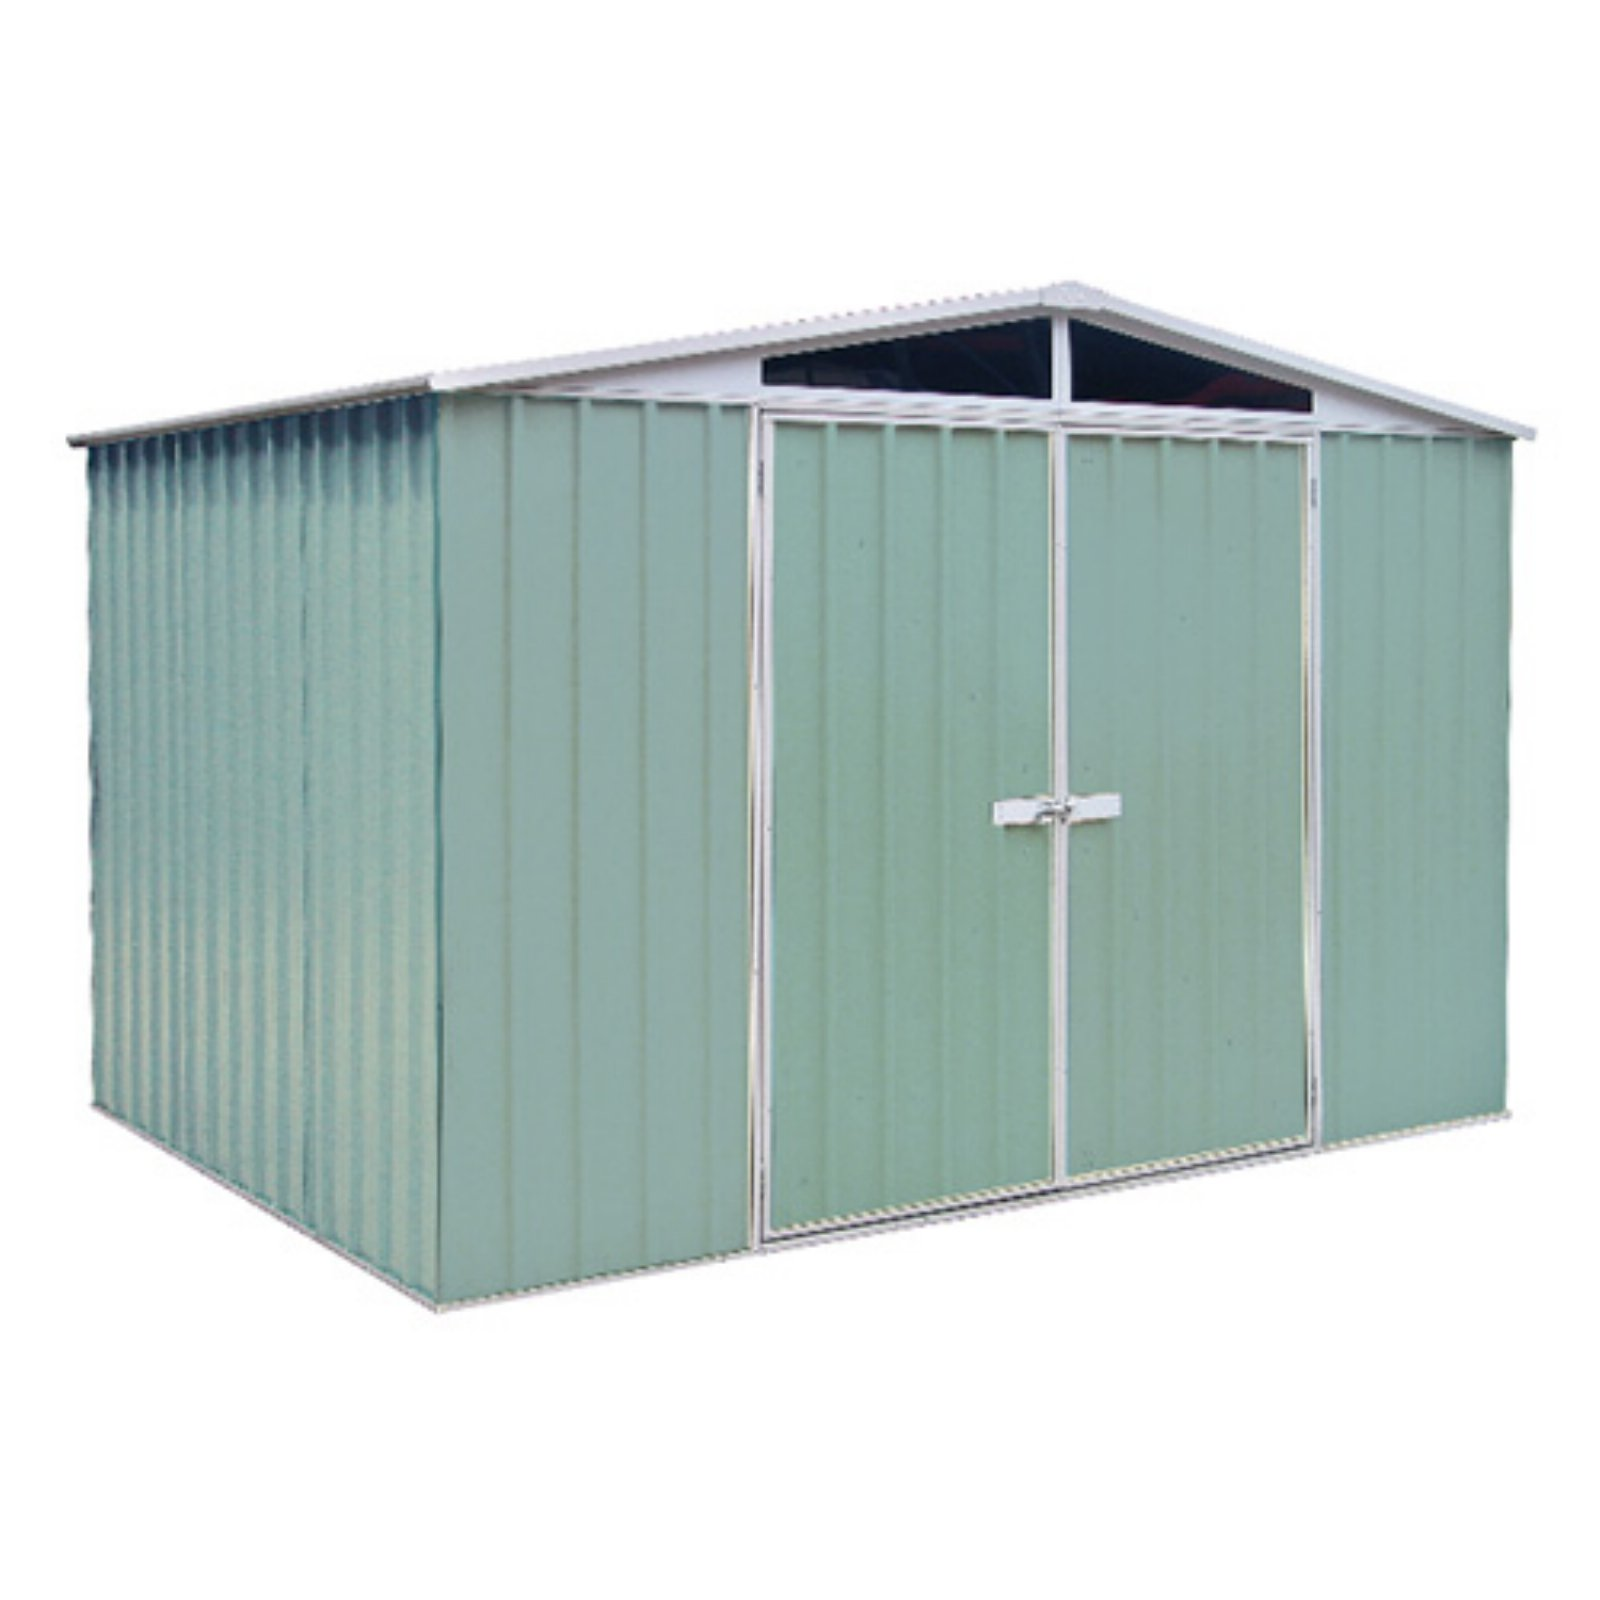 Image of ABSCO Sheds 30222DK Daylite 10 x 7 ft. Storage Shed